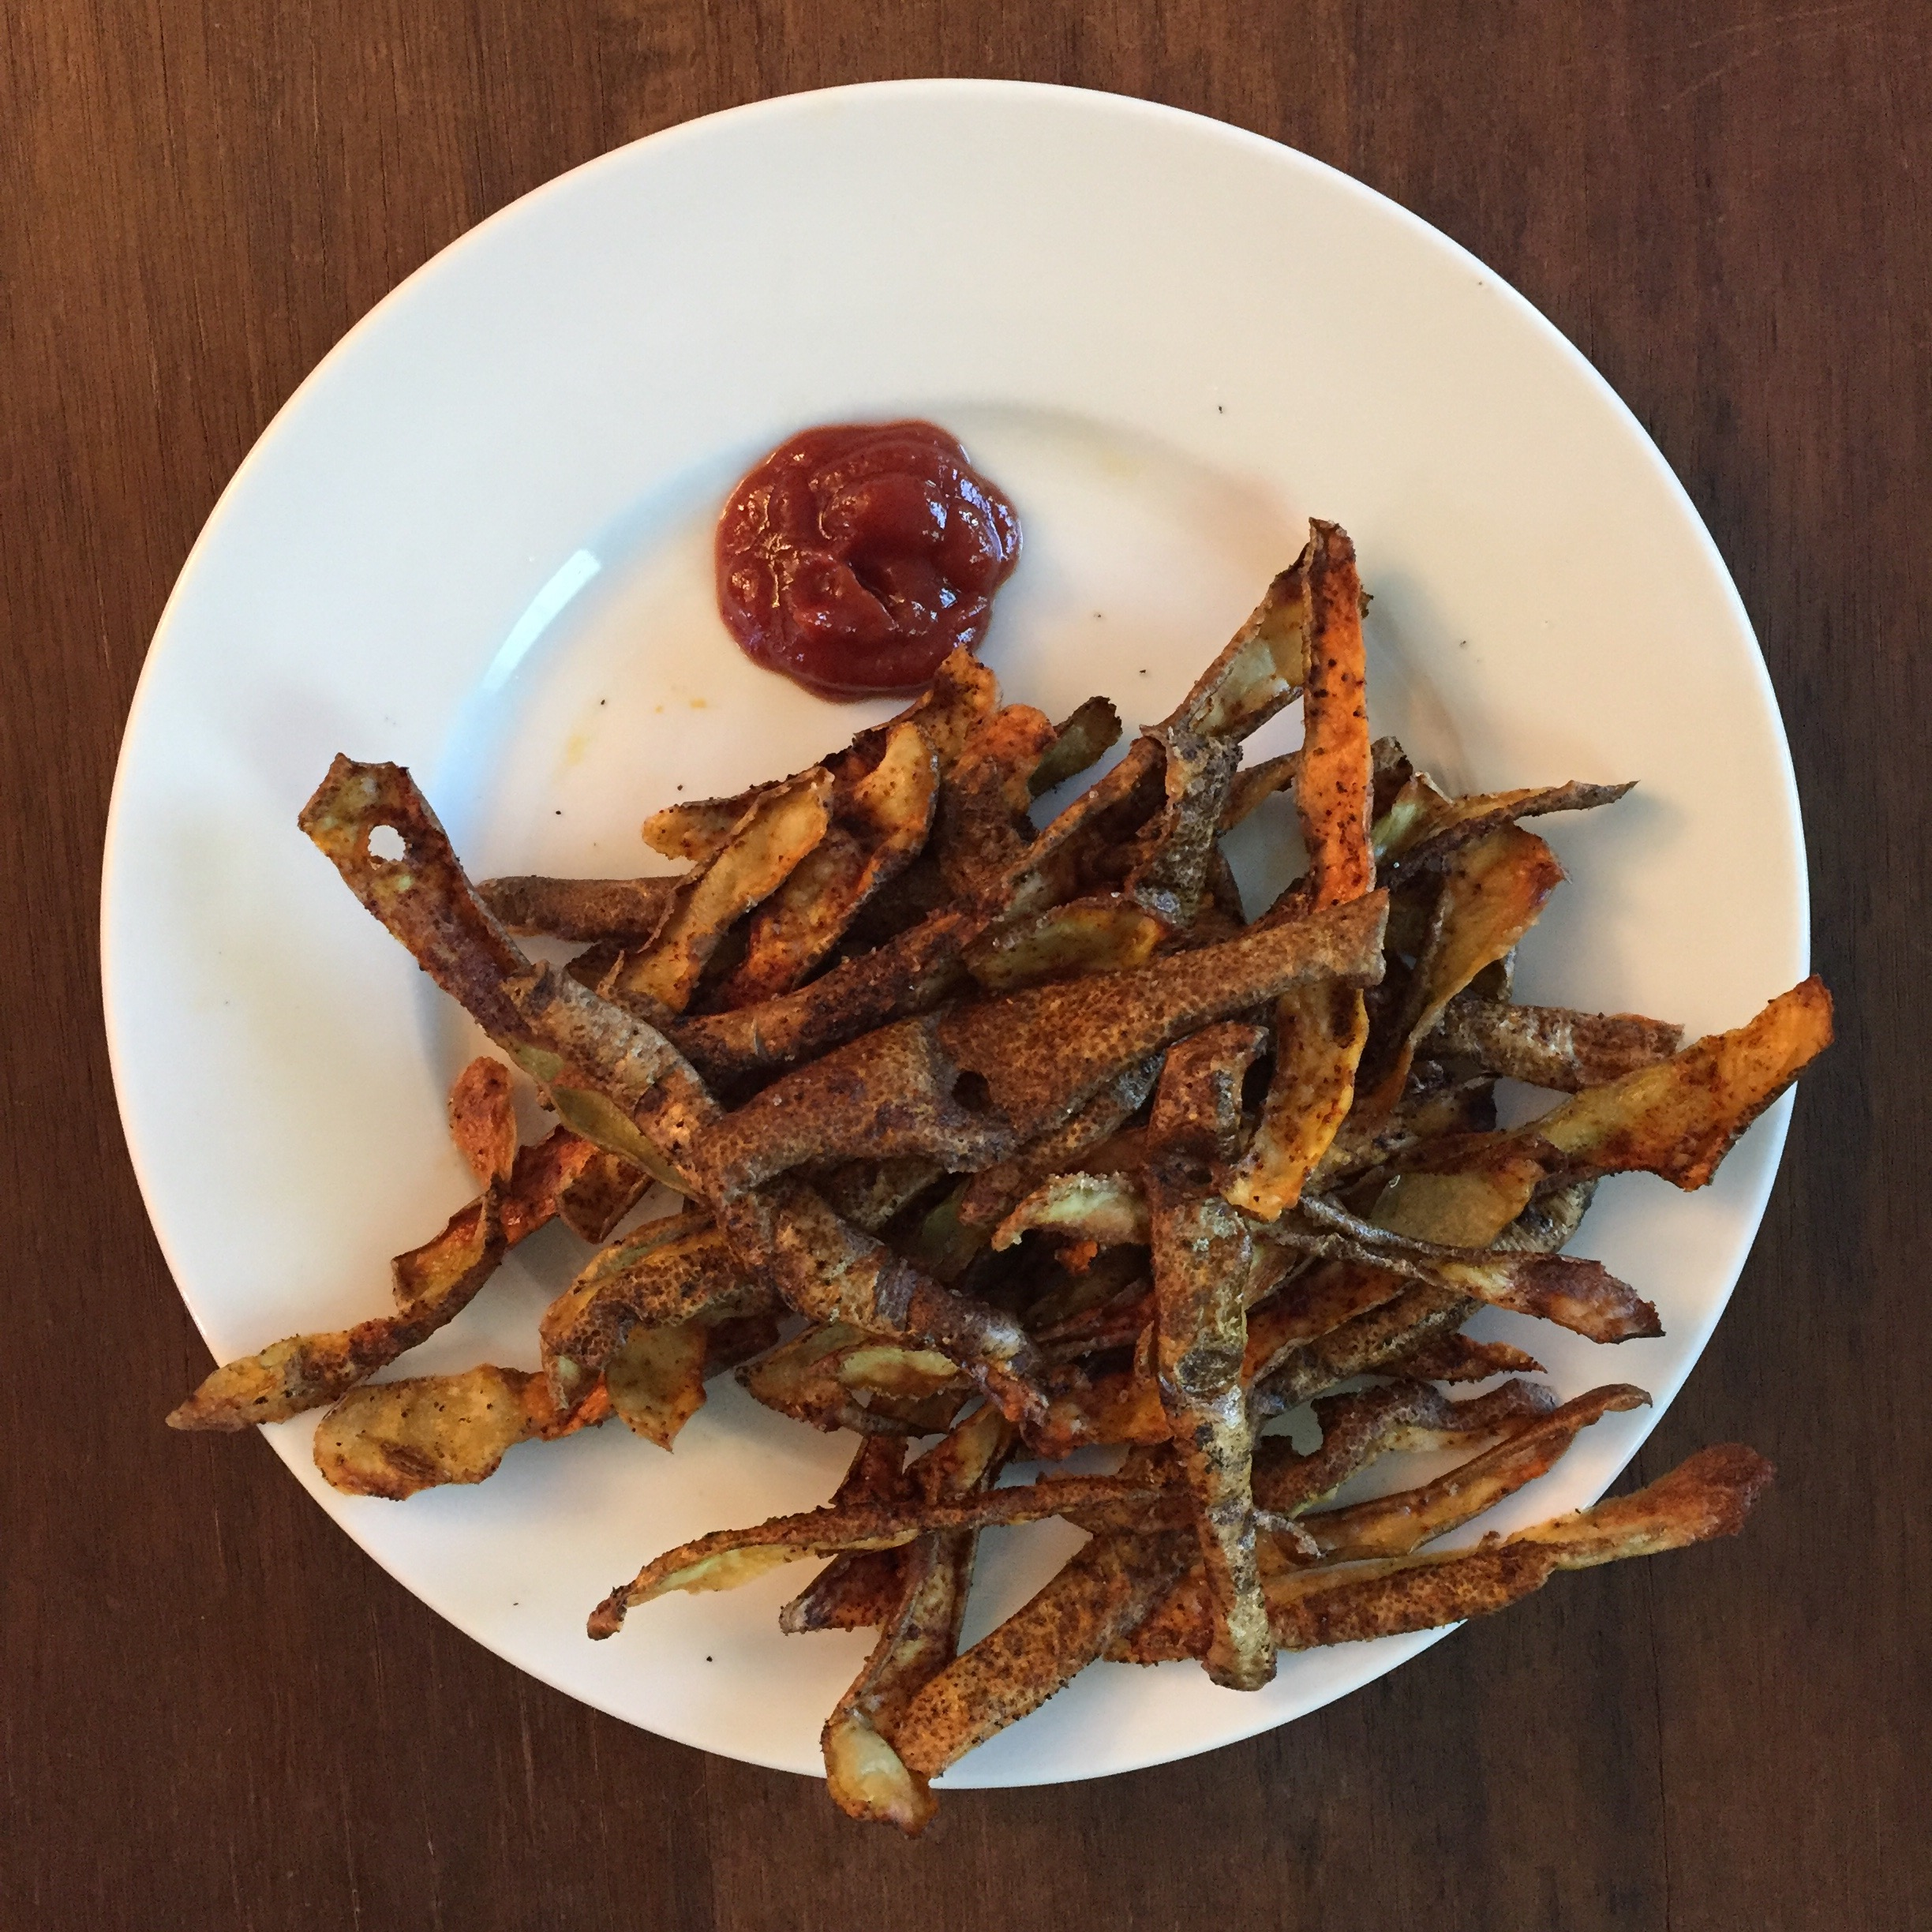 Potato Skin Crisps and 4 Easy Ways to Reduce Food Waste